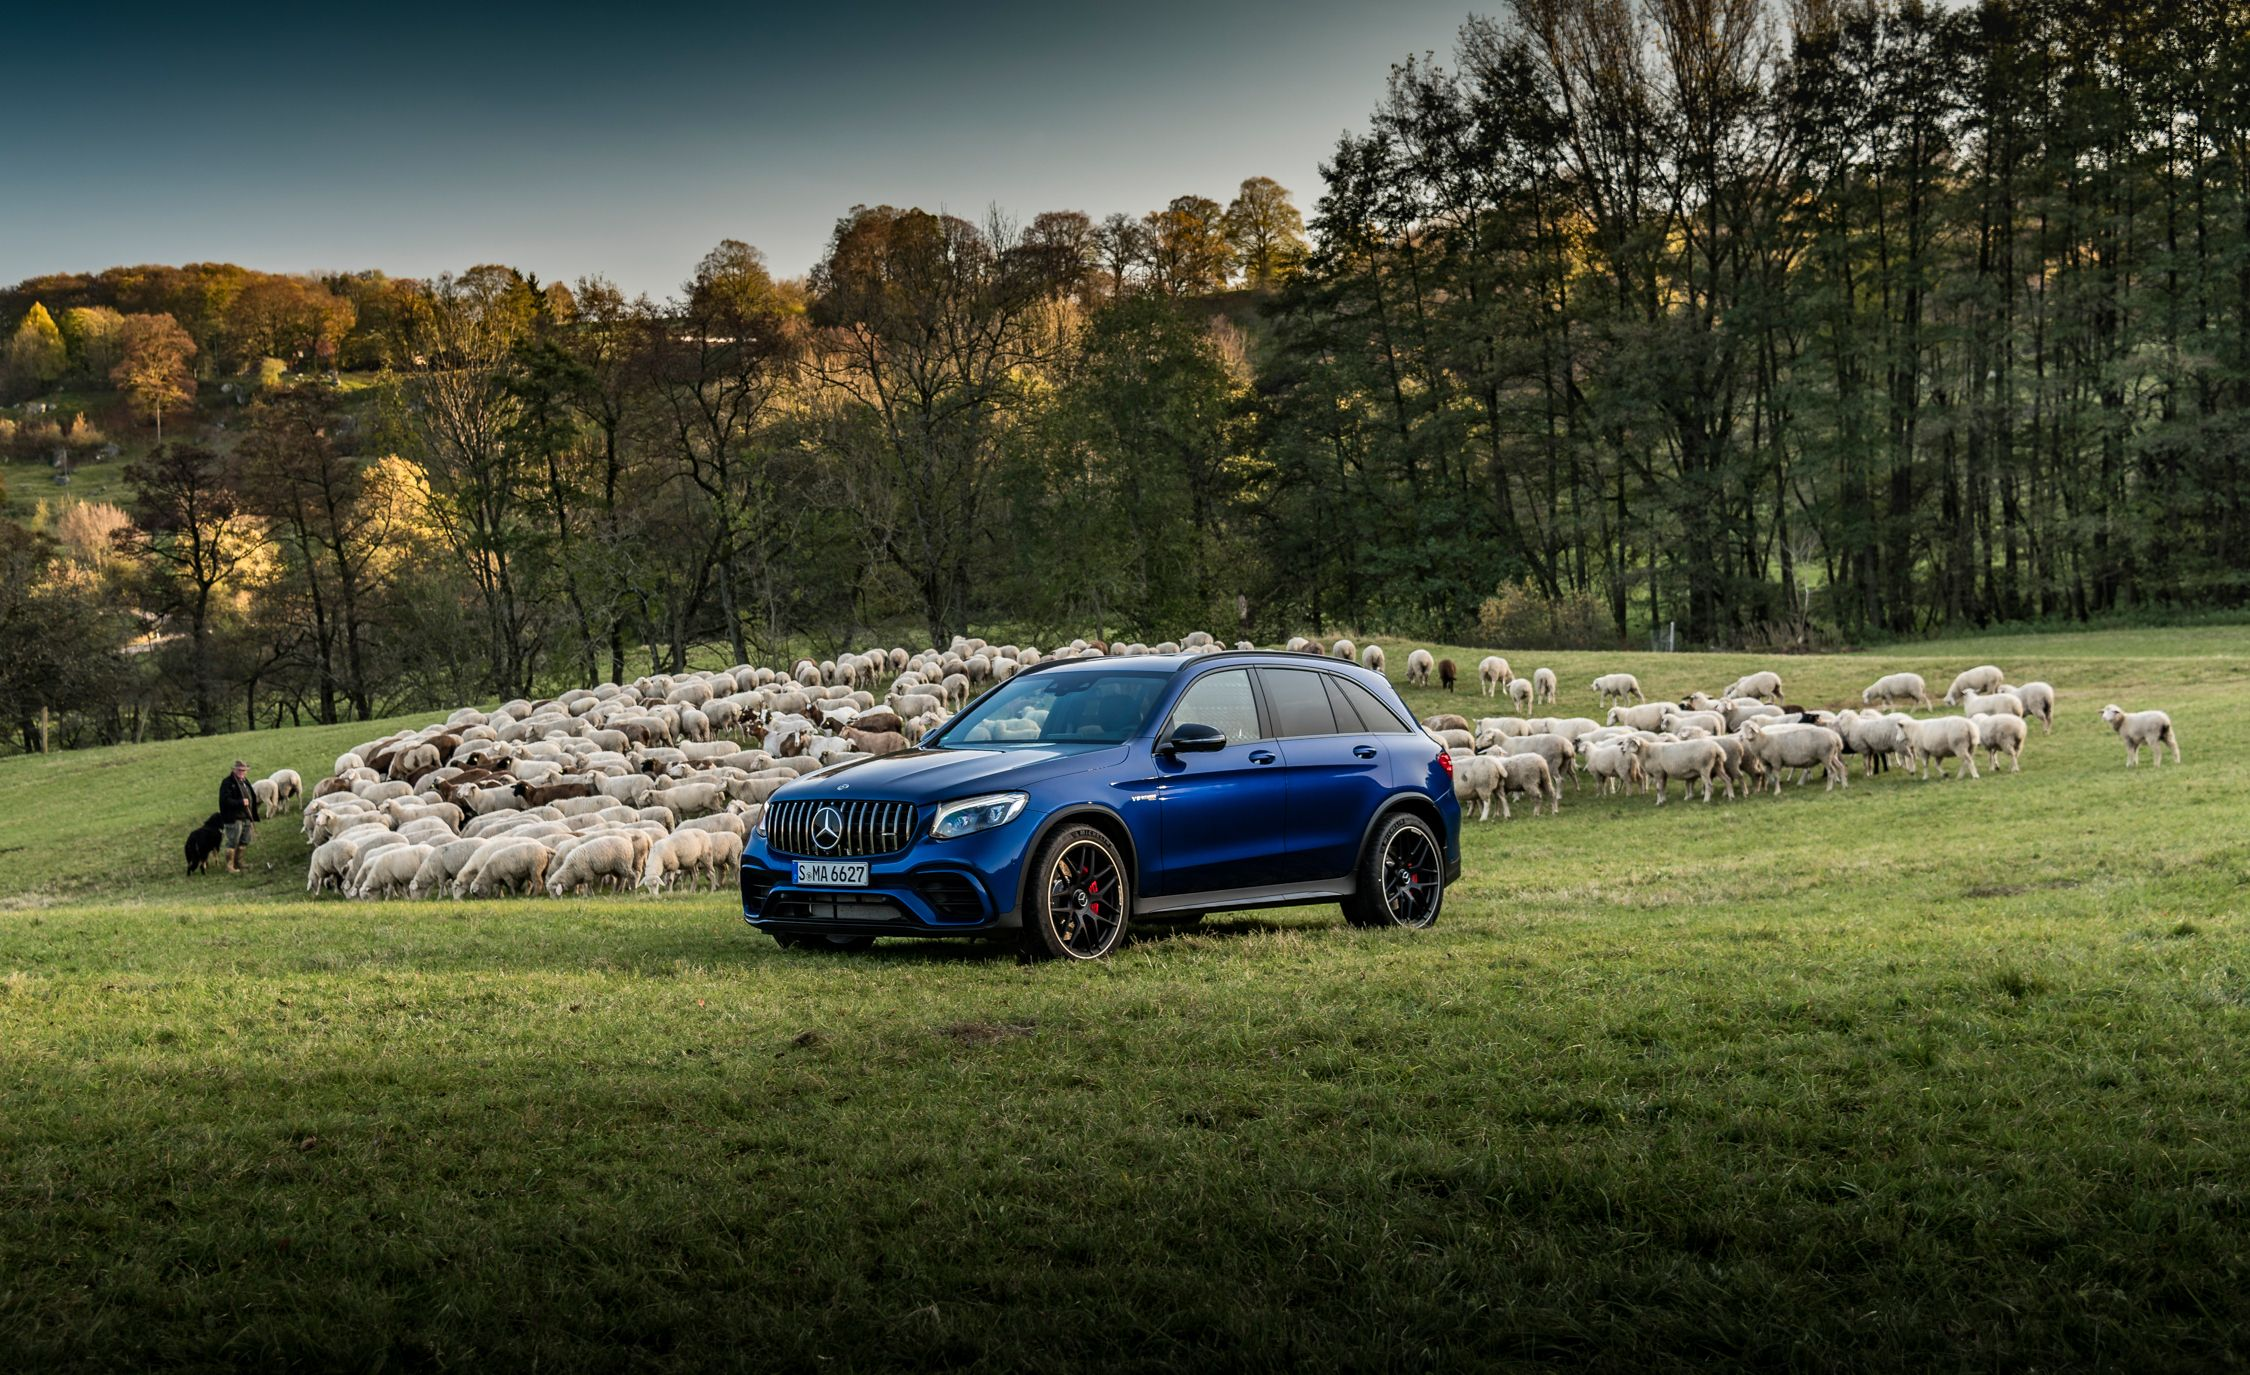 https://hips.hearstapps.com/amv-prod-cad-assets.s3.amazonaws.com/wp-content/uploads/2017/11/2018-Mercedes-AMG-GLC63-SUV-and-Coupe-113-2.jpg